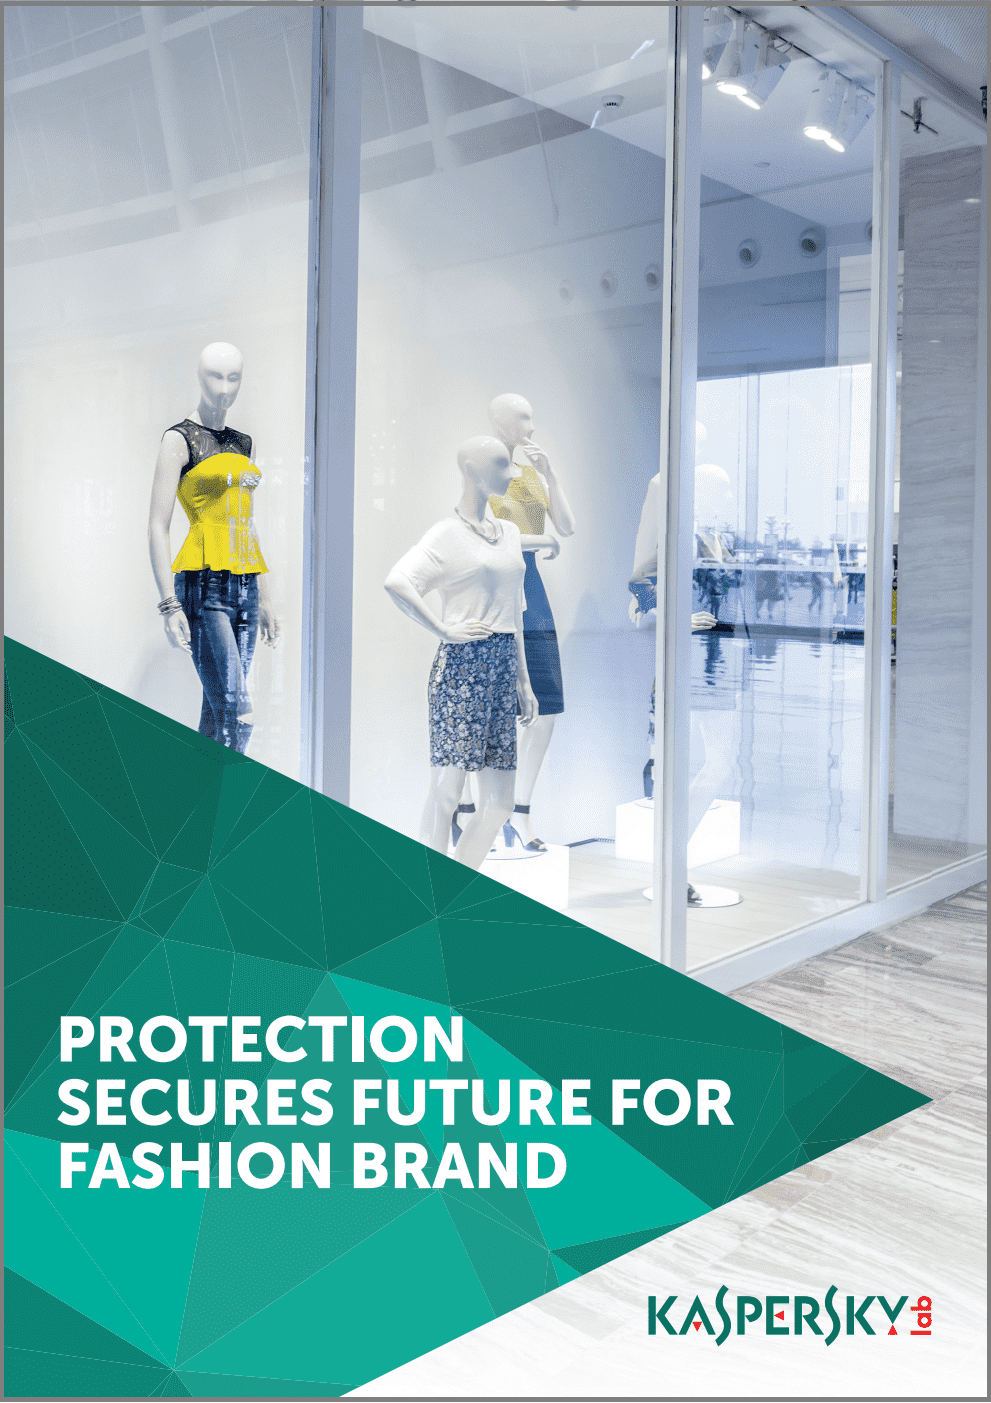 PROTECTION SECURES FUTURE FOR FASHION BRAND